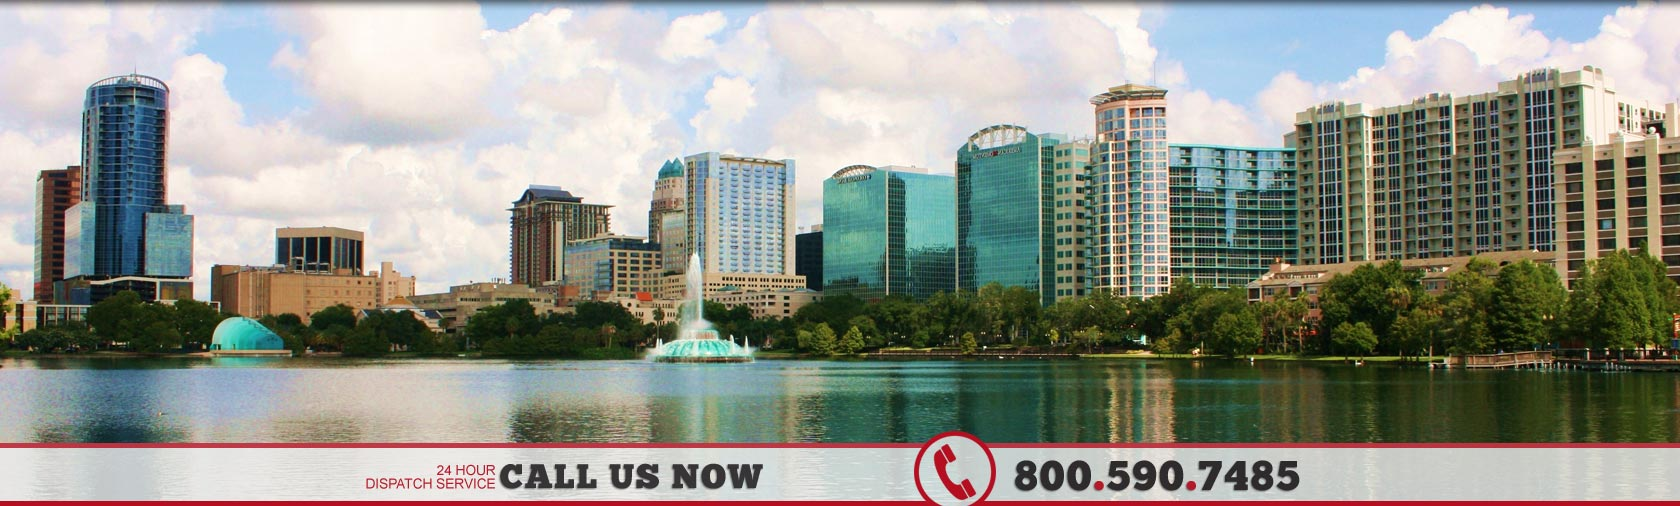 Explore Downtown Orlando